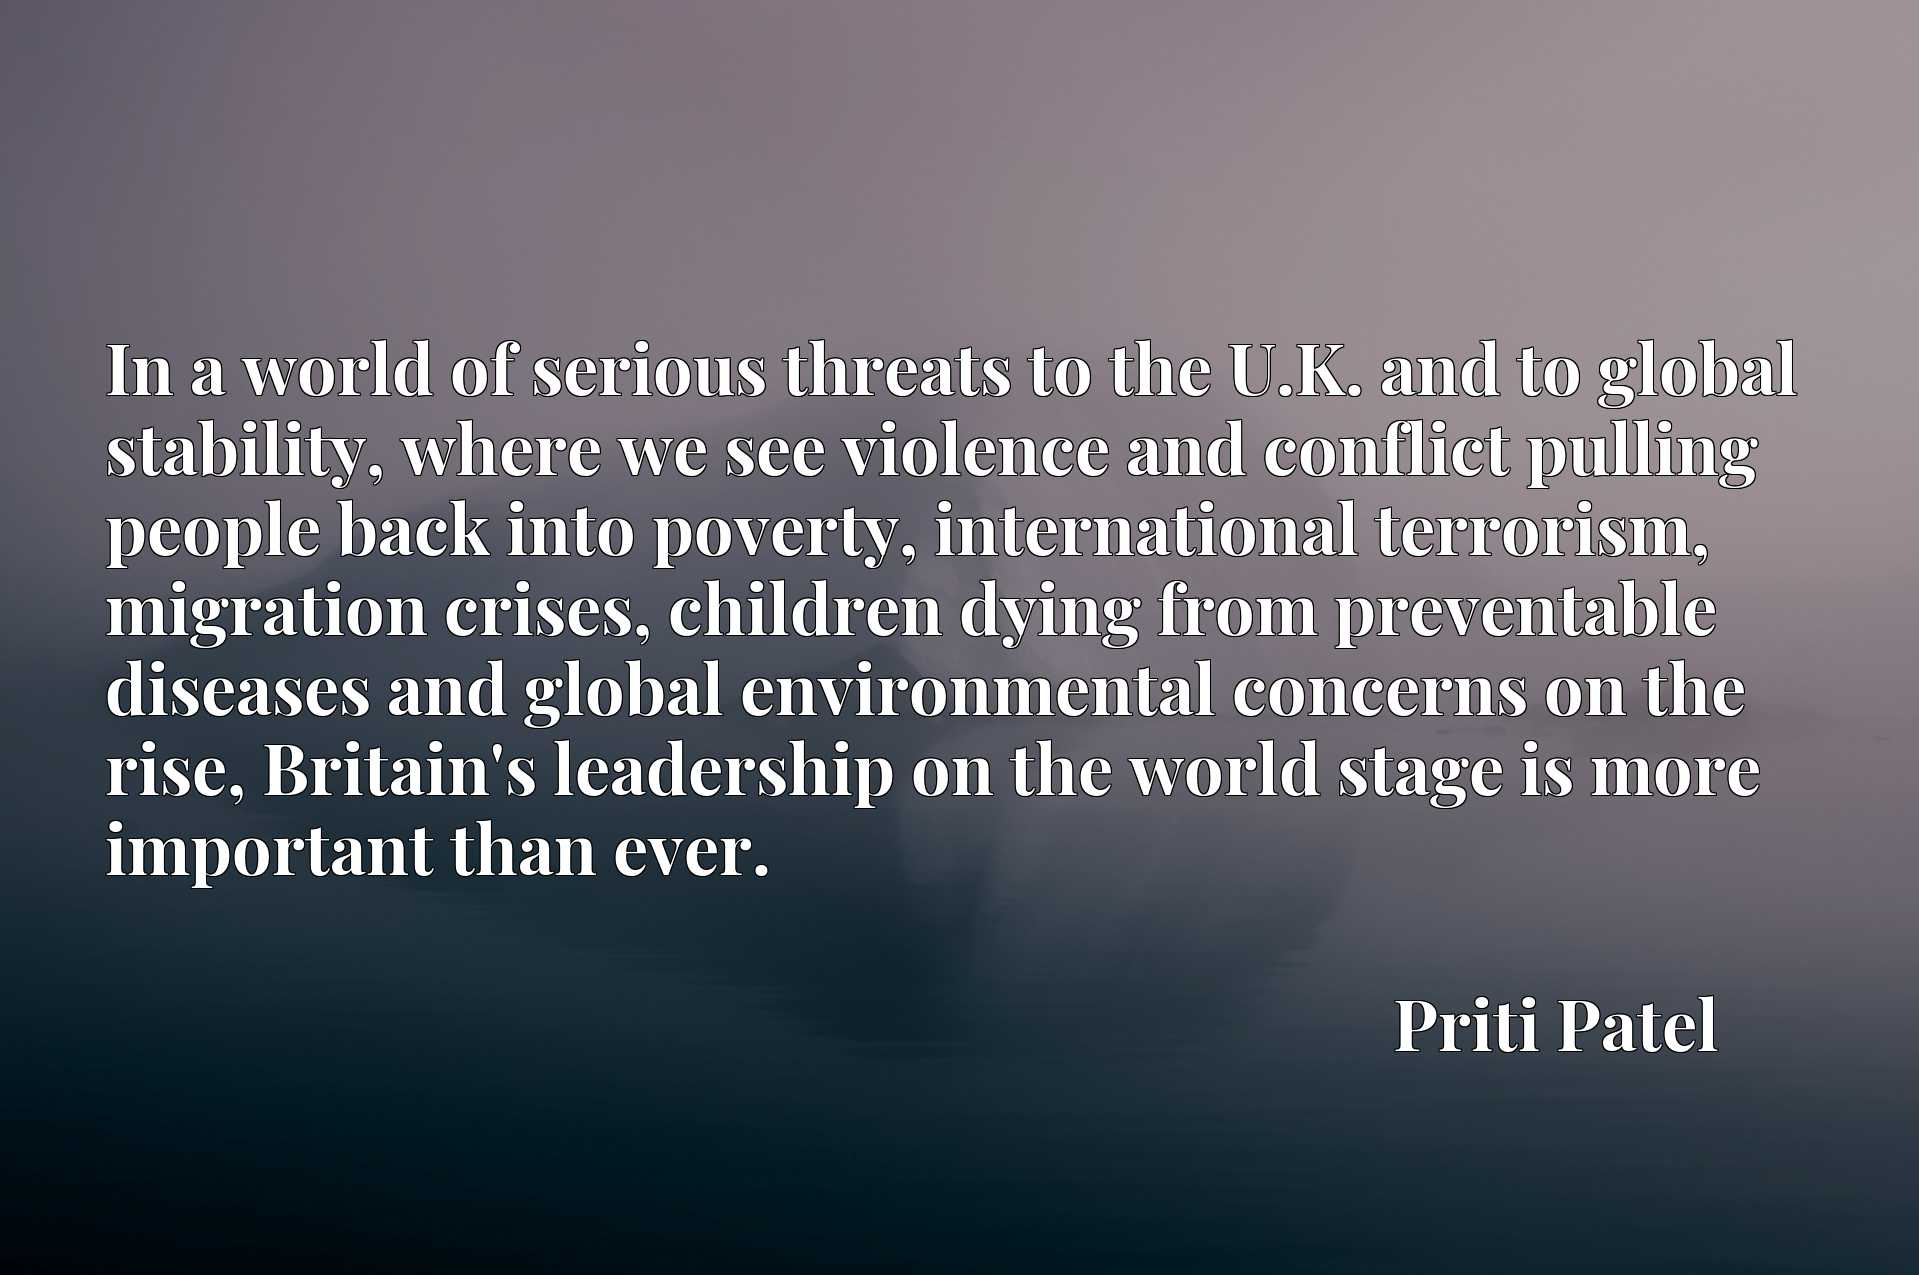 In a world of serious threats to the U.K. and to global stability, where we see violence and conflict pulling people back into poverty, international terrorism, migration crises, children dying from preventable diseases and global environmental concerns on the rise, Britain's leadership on the world stage is more important than ever.